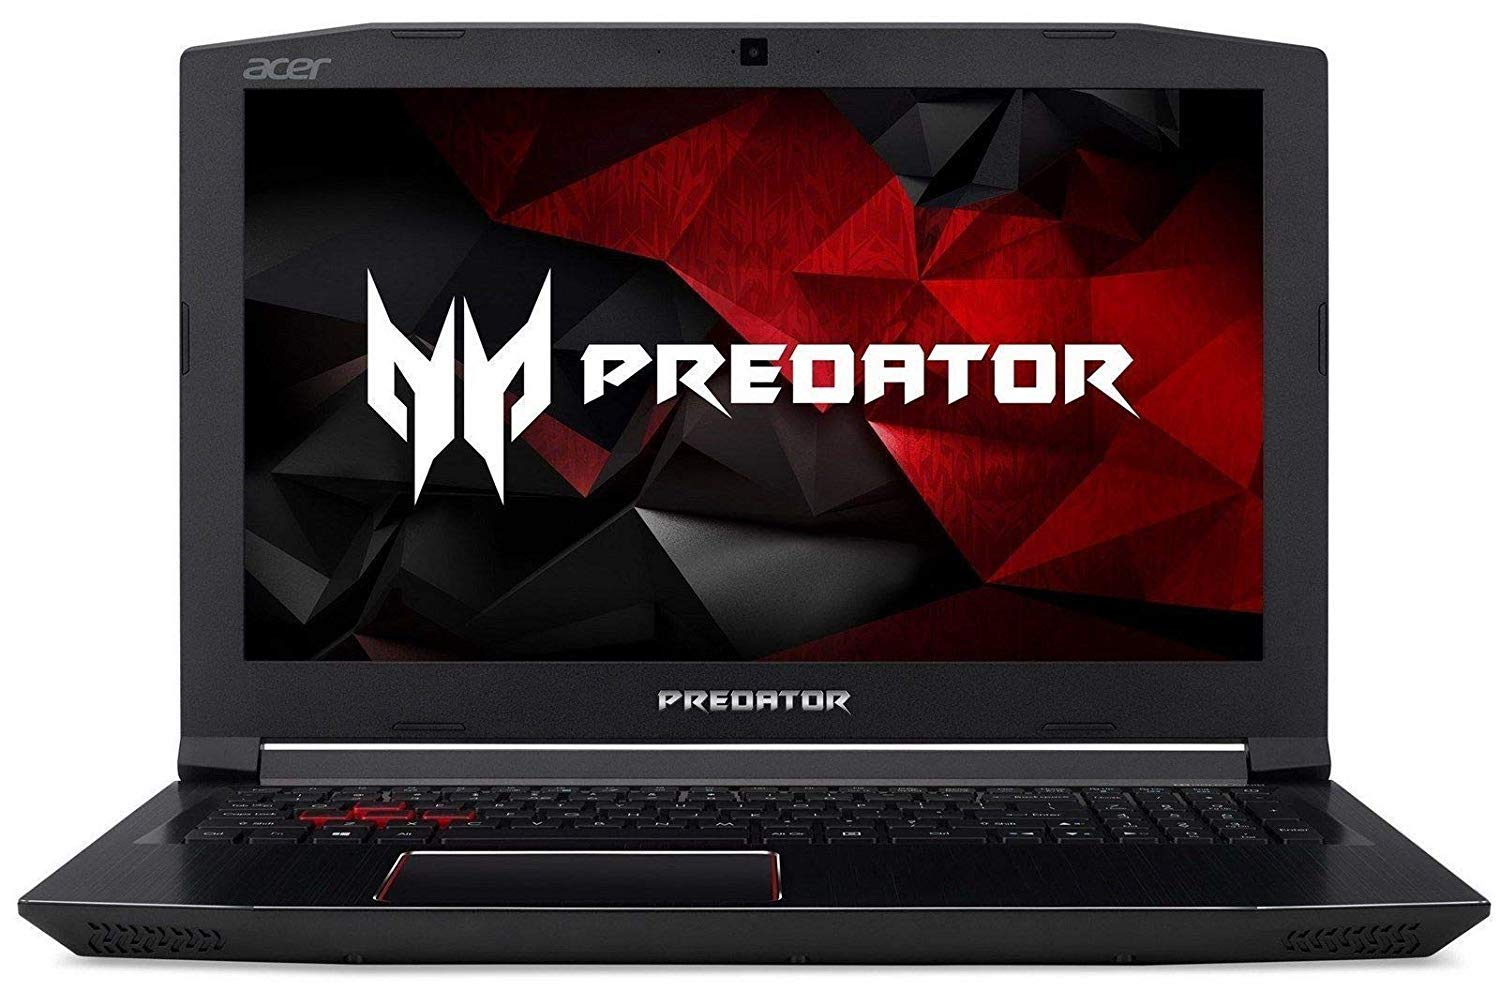 2019 Acer Predator Helios 300 VR Reality Gaming Laptop Computer, 15.6 FHD IPS, 8th Gen Intel Hexa-Core i7-8750H up to 4.1GHz, 24GB DDR4, 1TB HDD 256GB PCI-e SSD, GTX 1060 6GB, HDMI, Windows 10